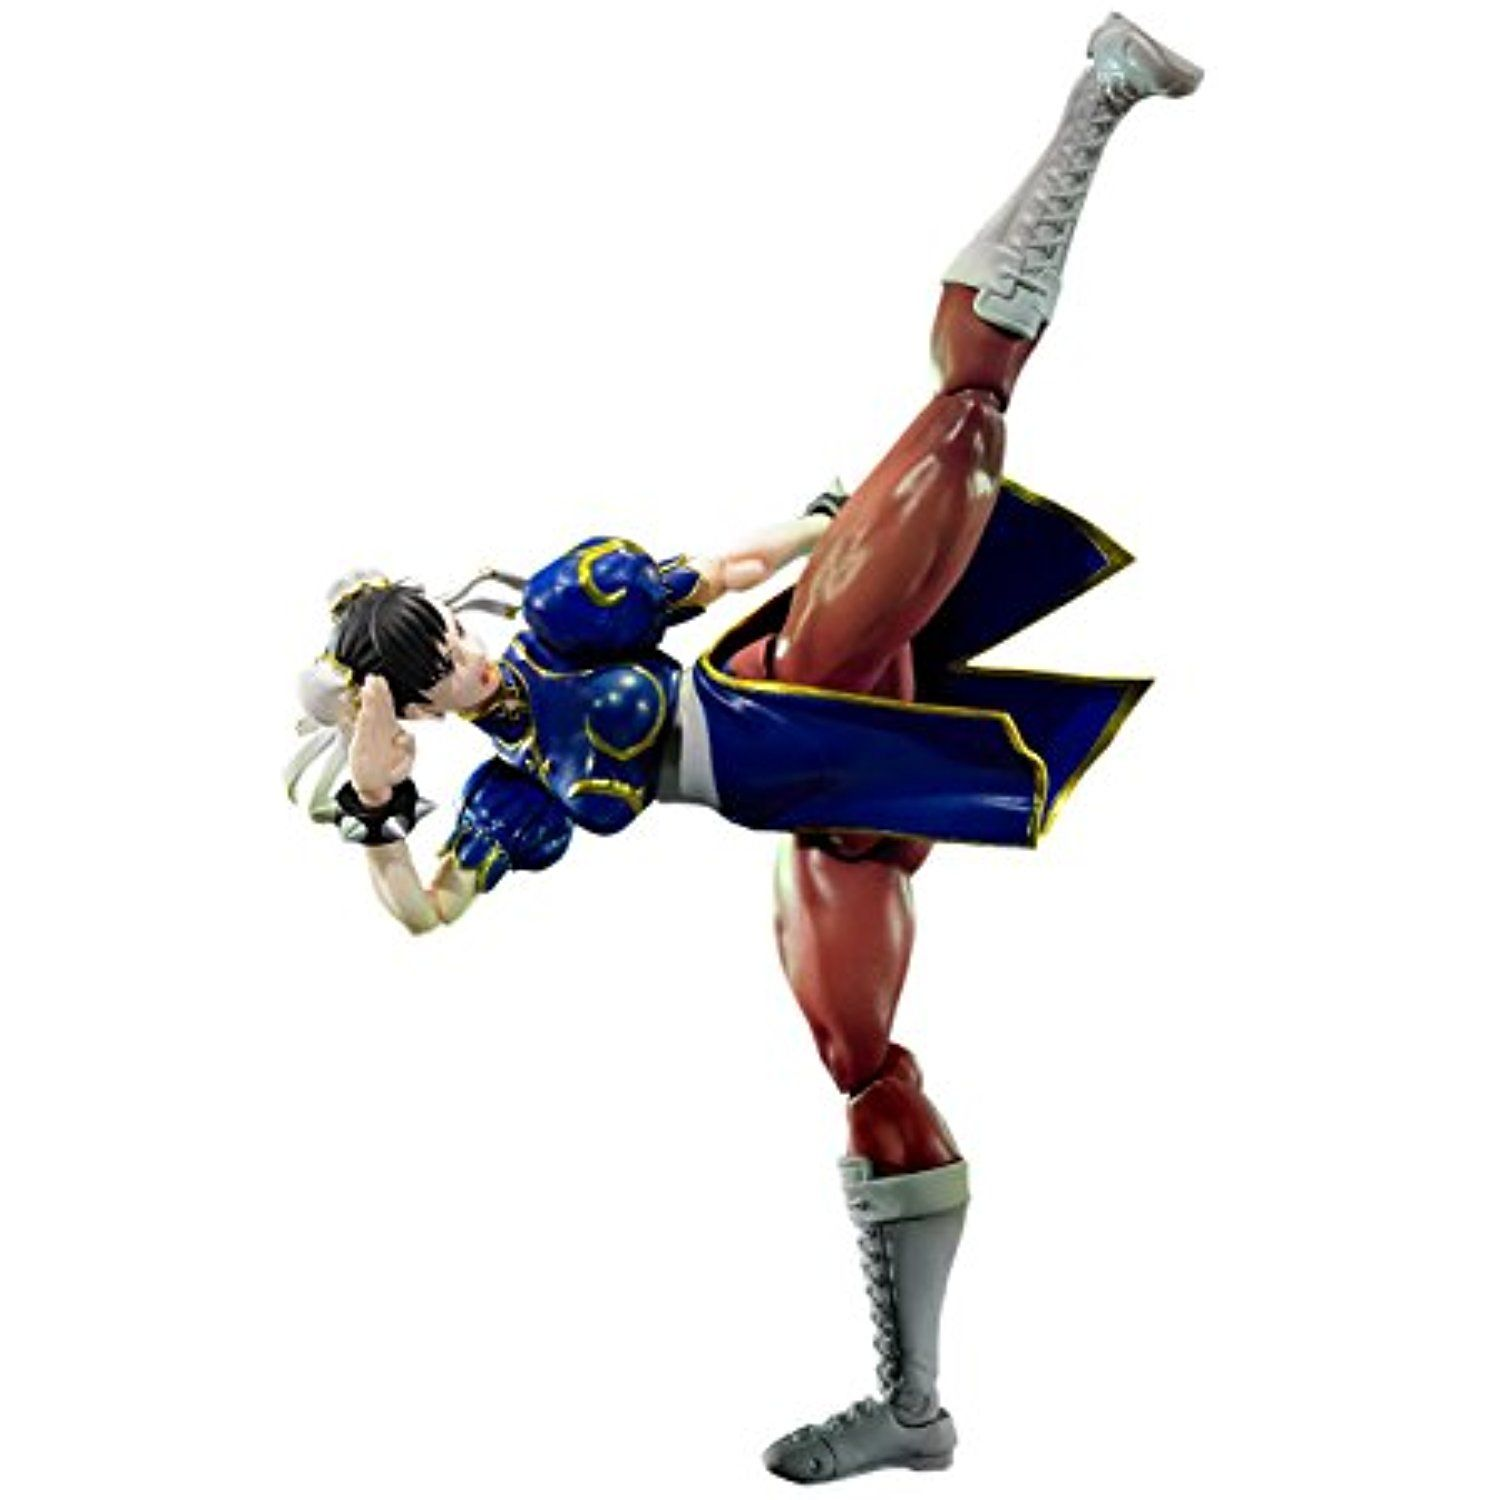 Figuarts Action Figure Bandai//Tamashii Nations Street Fighter V-Chun-Li S.H